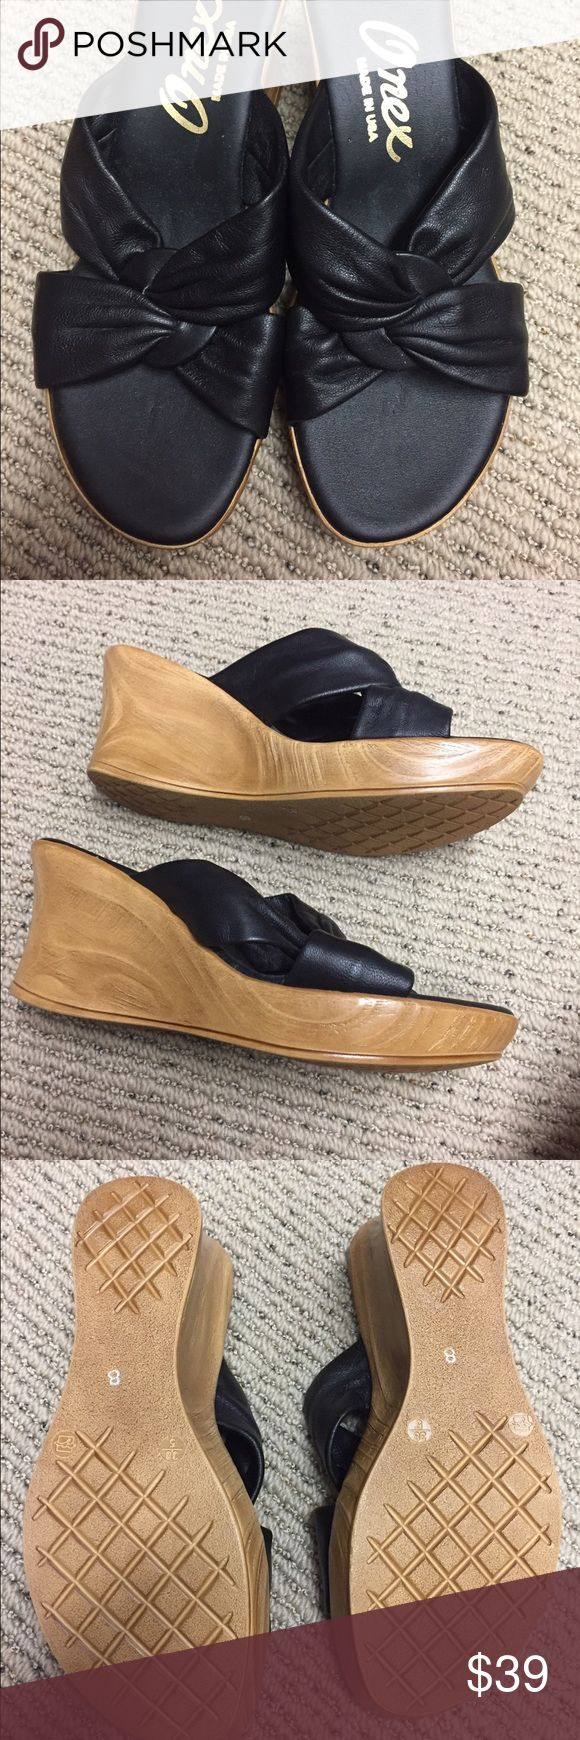 Onex Black and Tan Wedges Onex Black and Tan Wedges worn once size 8 onex Shoes Wedges